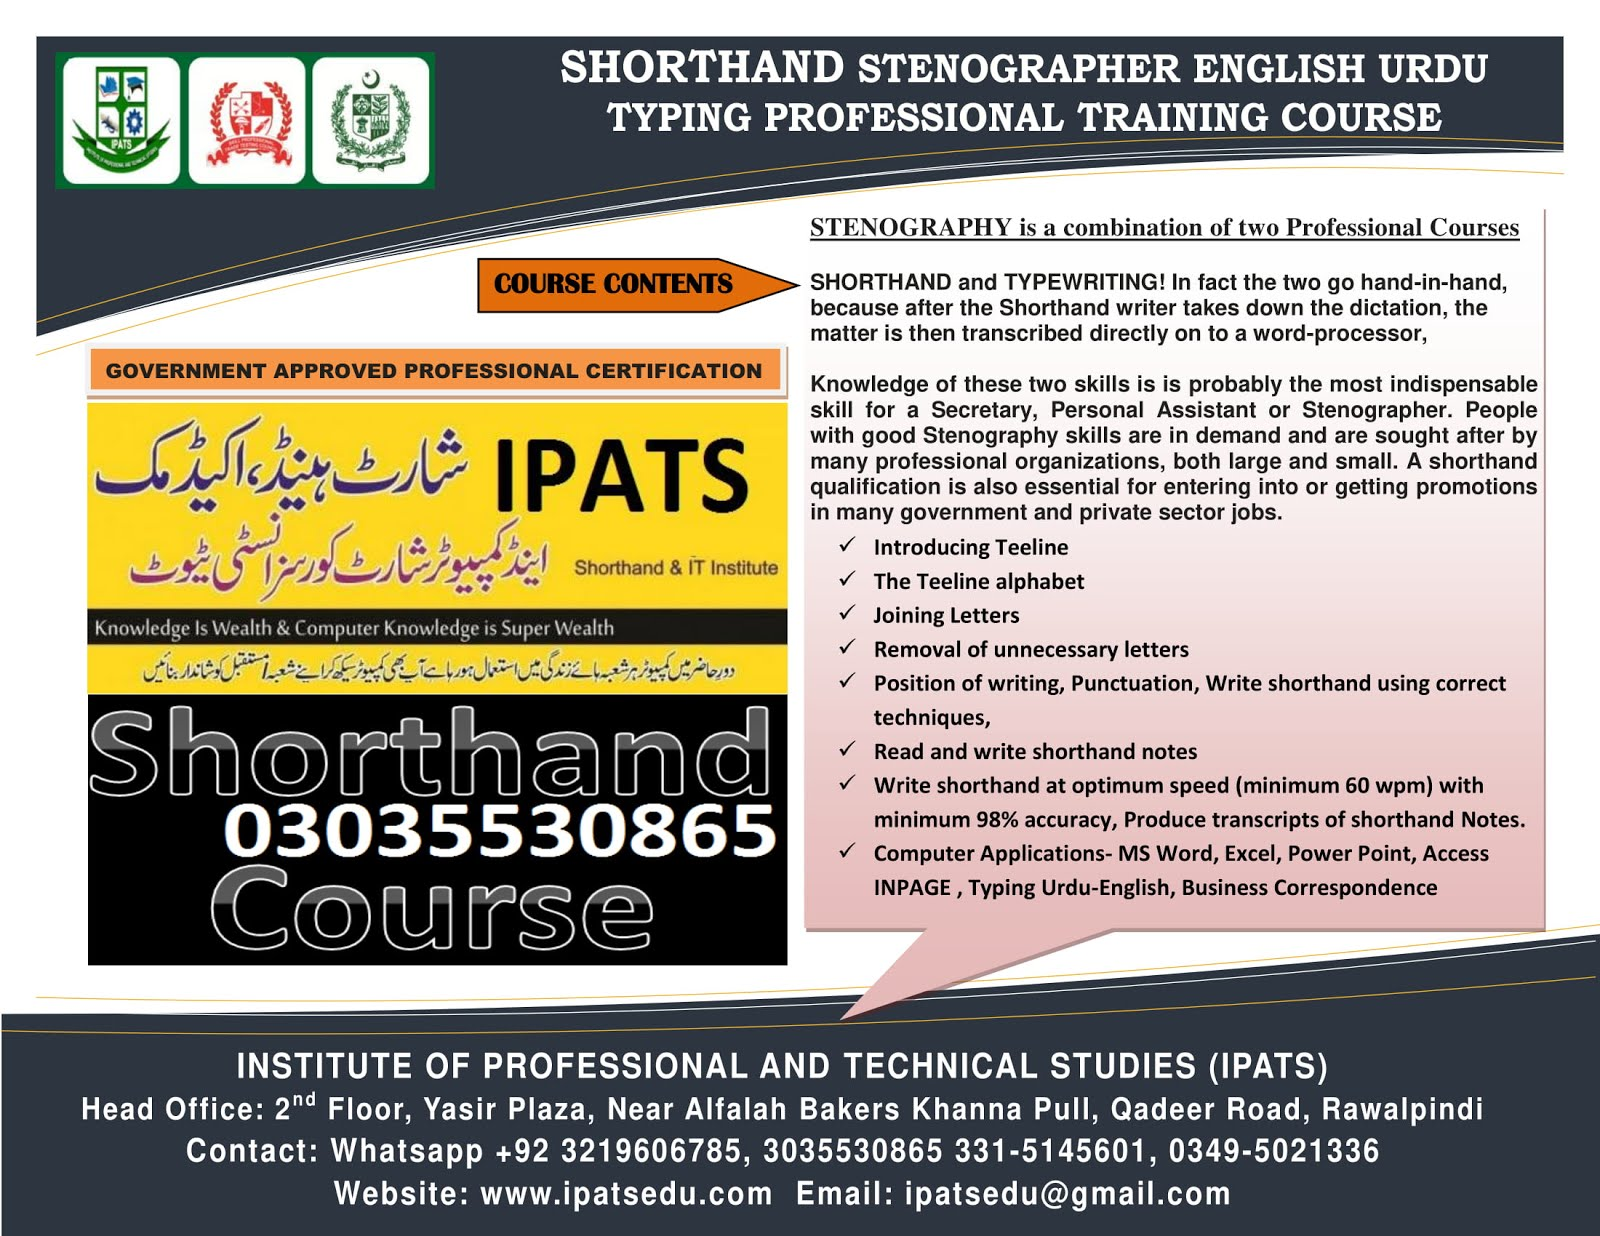 SHORTHAND (PITMAN SHORTHAND TRAINING INSTITUTE) IN RWP, IN RWP